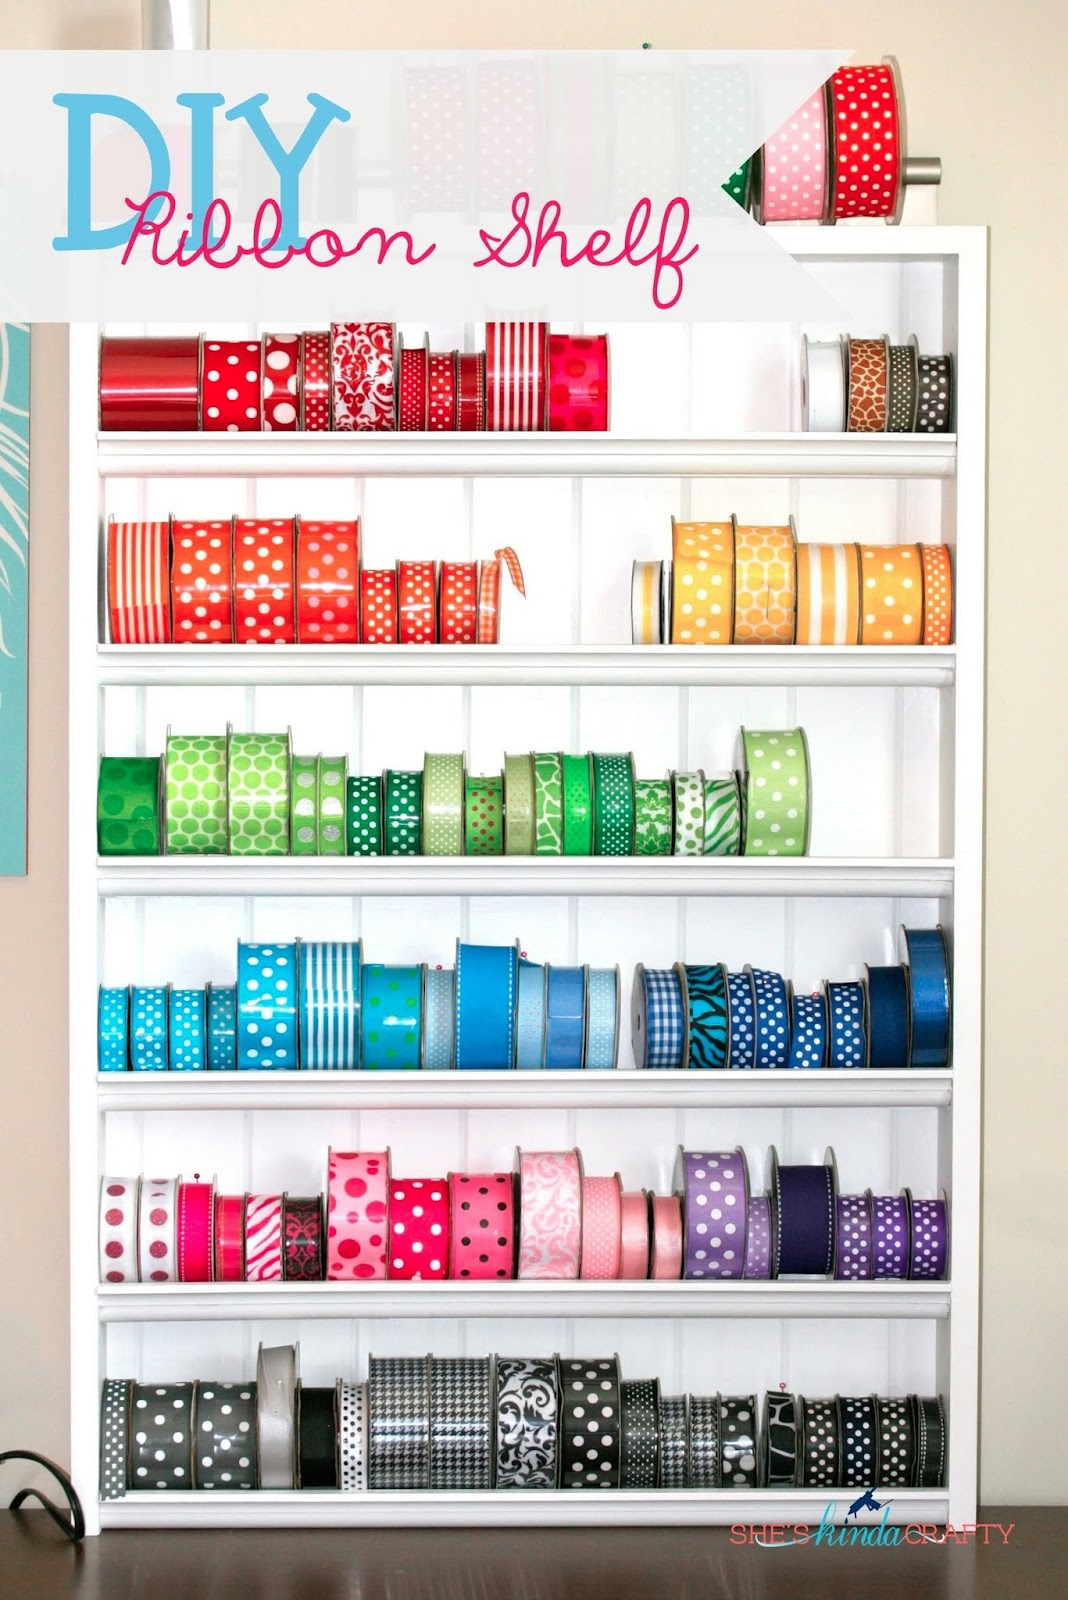 DIY Ribbon Shelf